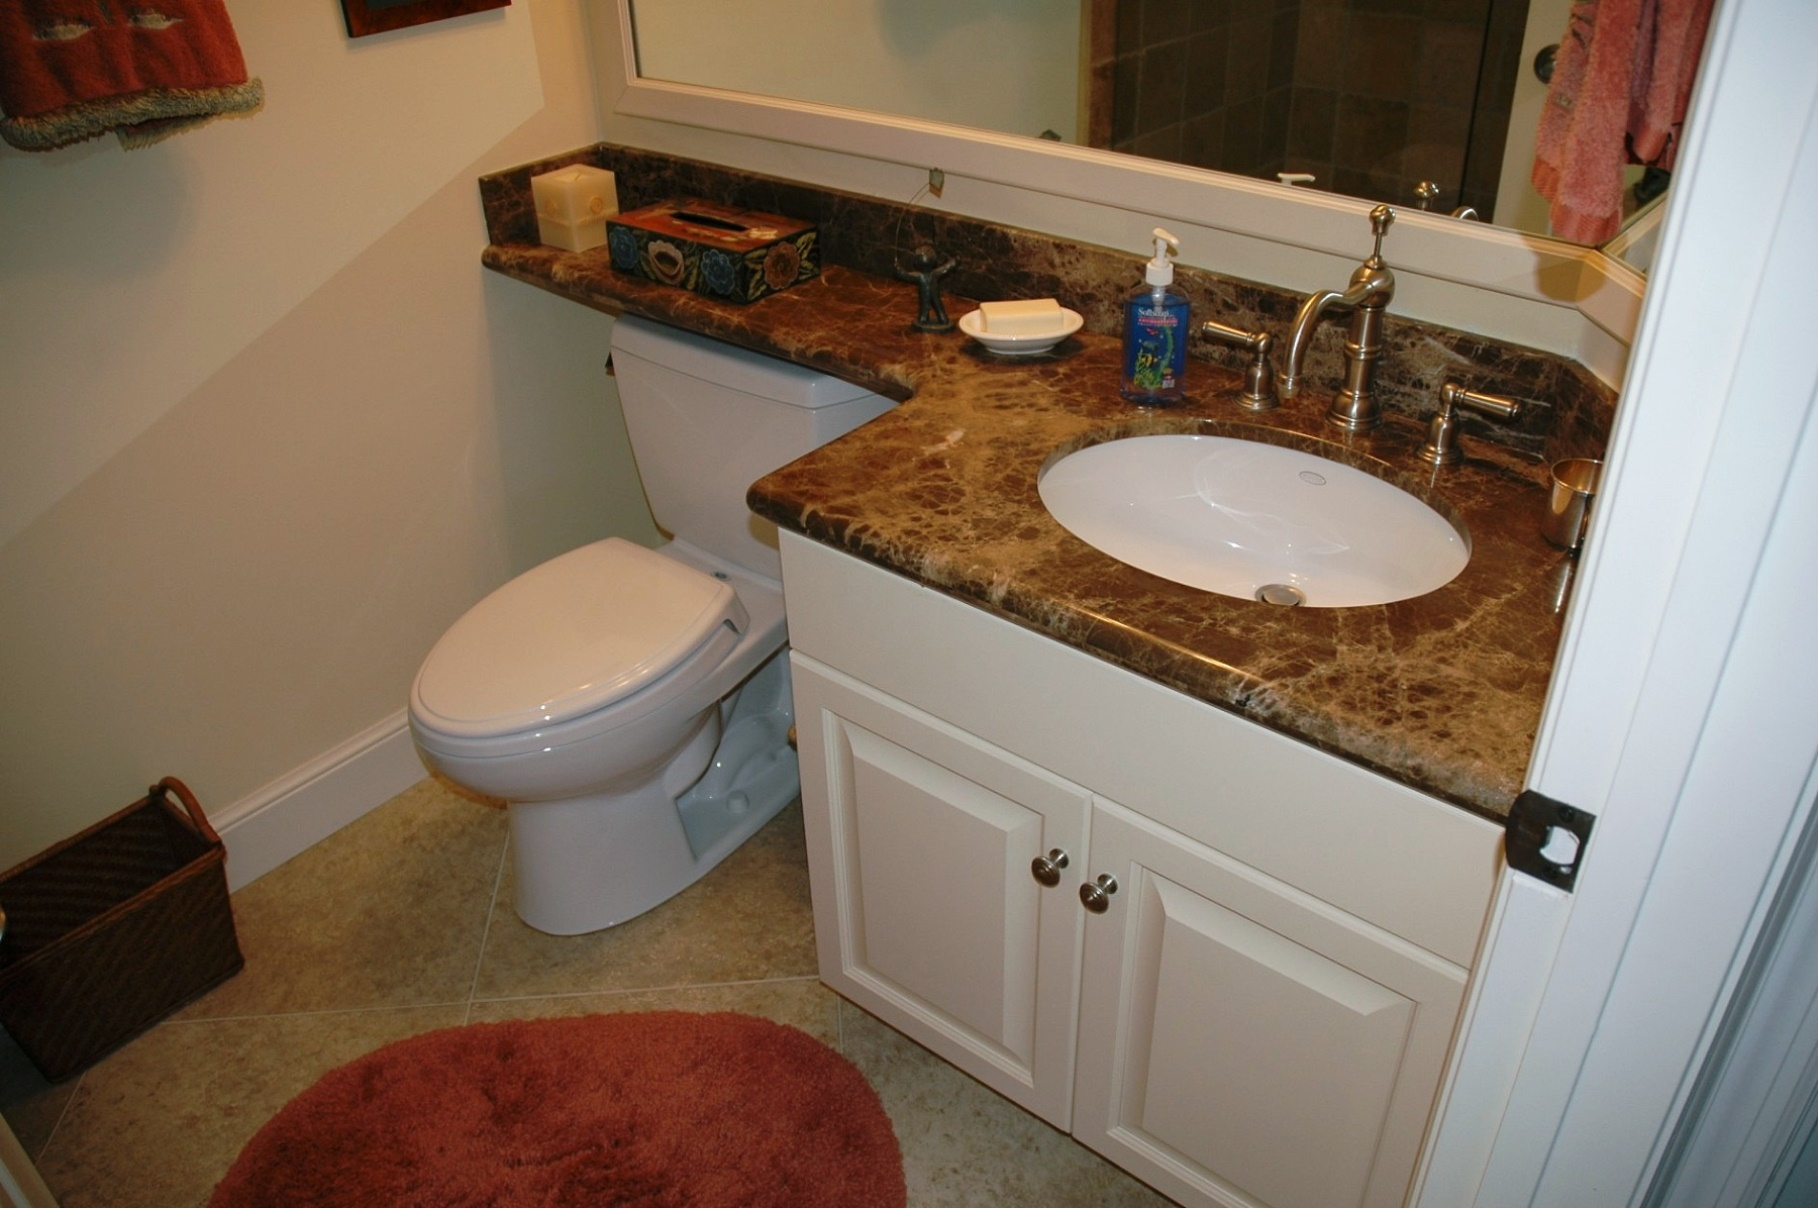 Stuart palm city port st lucie fl bathroom for Bathroom remodel jupiter fl